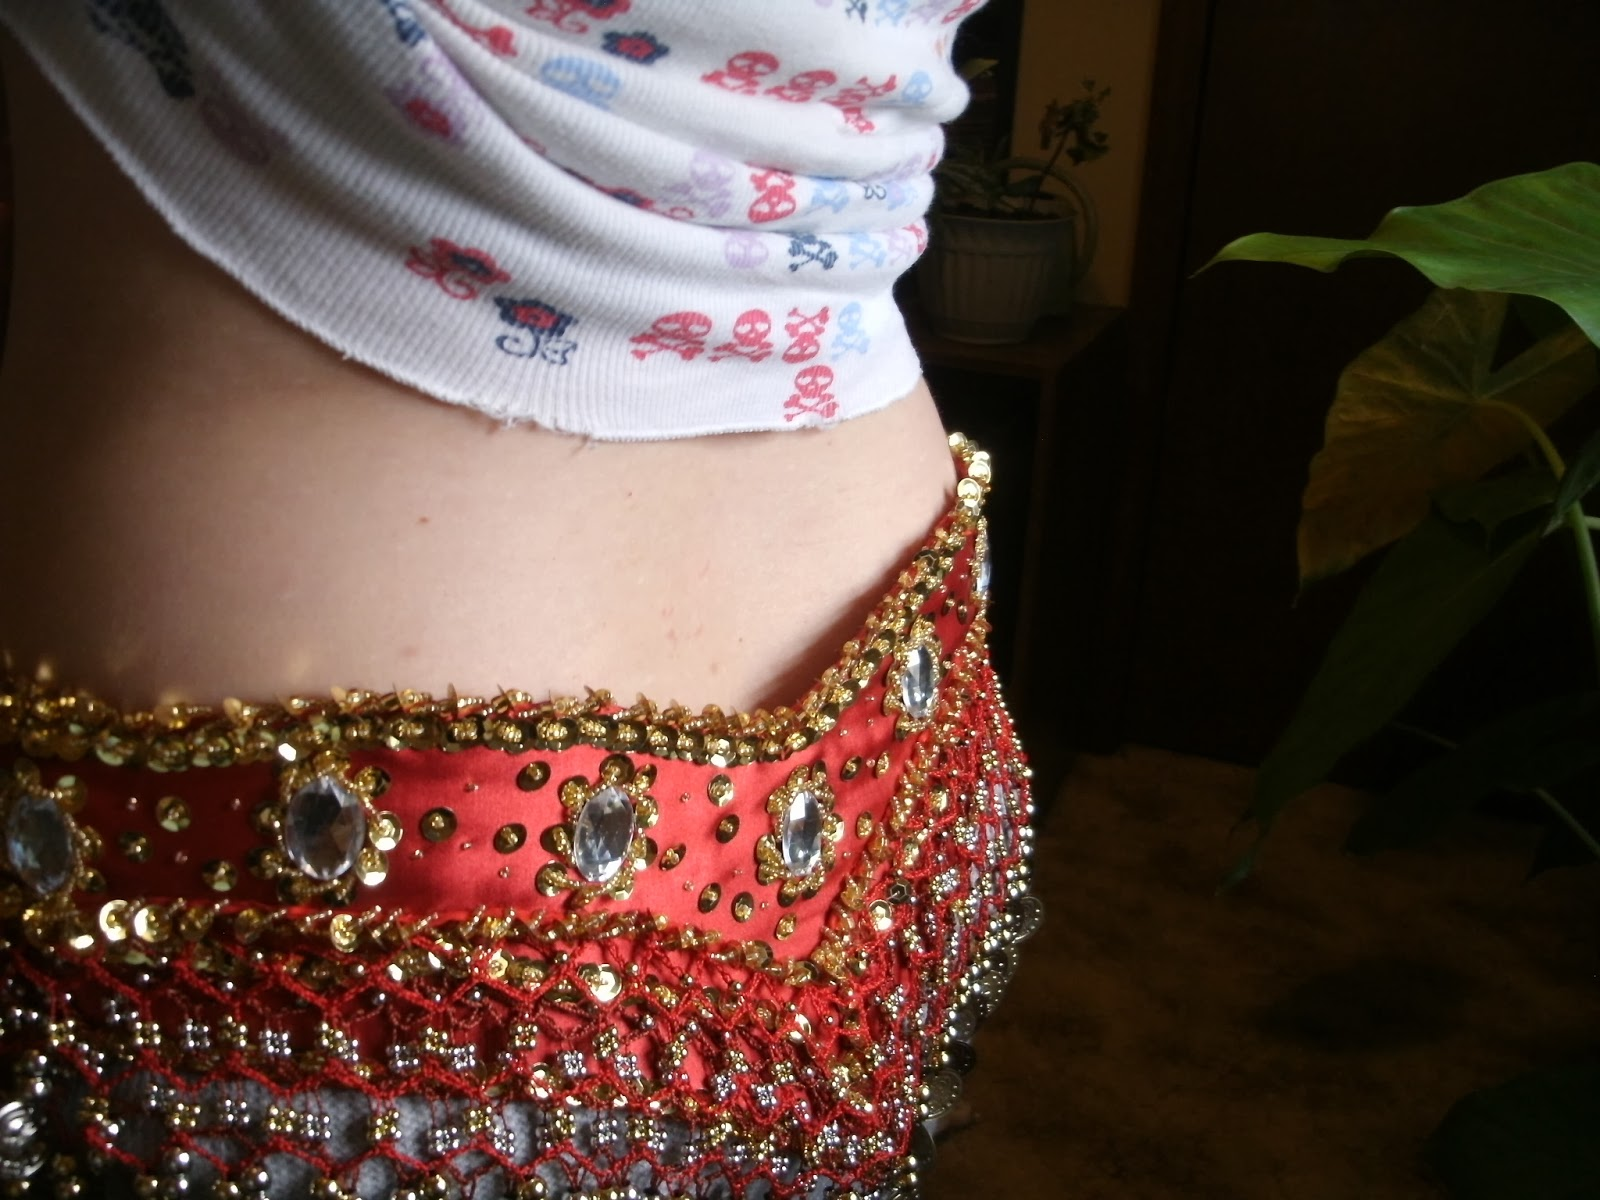 ac59eb1b53 Naima s Bellydance Blog  Tutorial  Getting Rid of Belt Butt-Gap